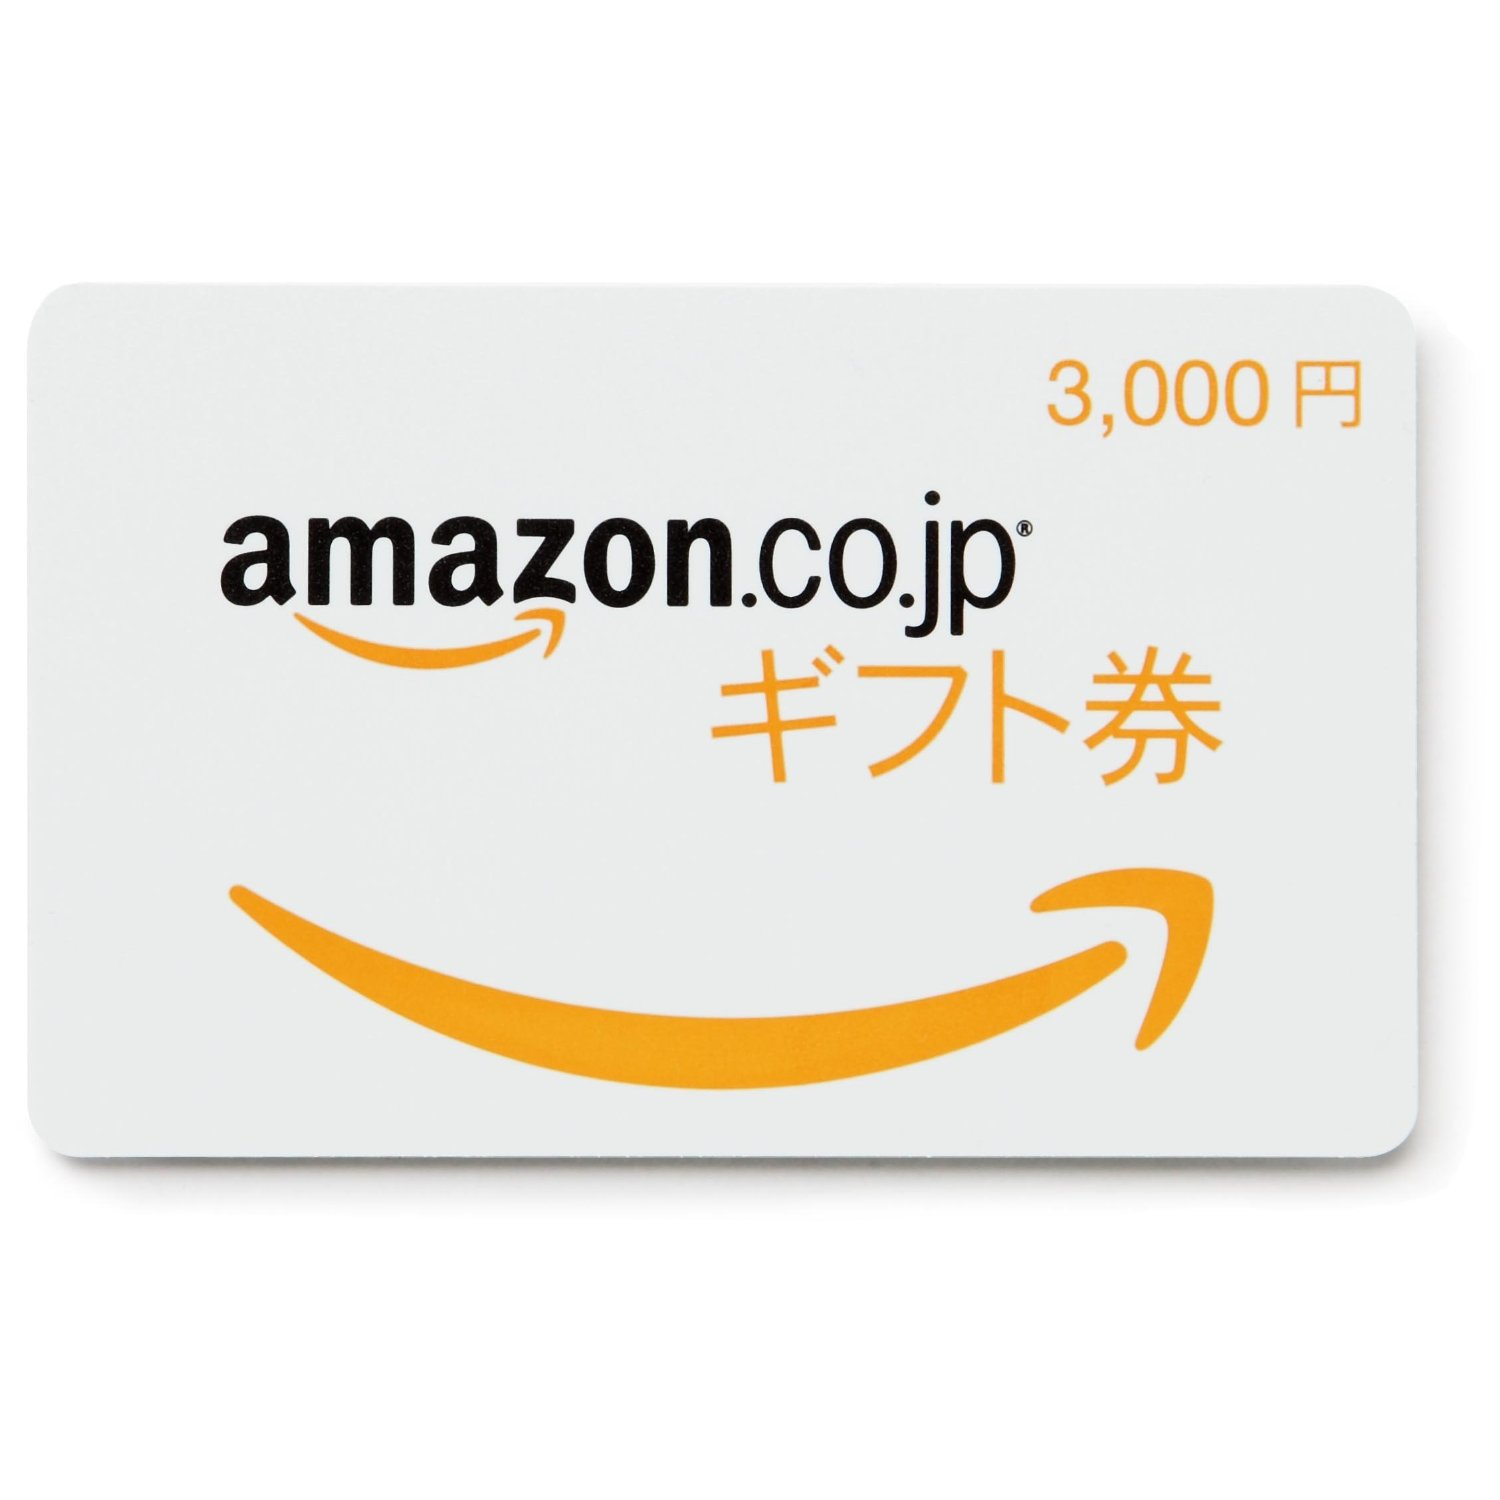 Amazon gift card 3000 jpy japan codes amazon gift card 3000 jpy negle Gallery